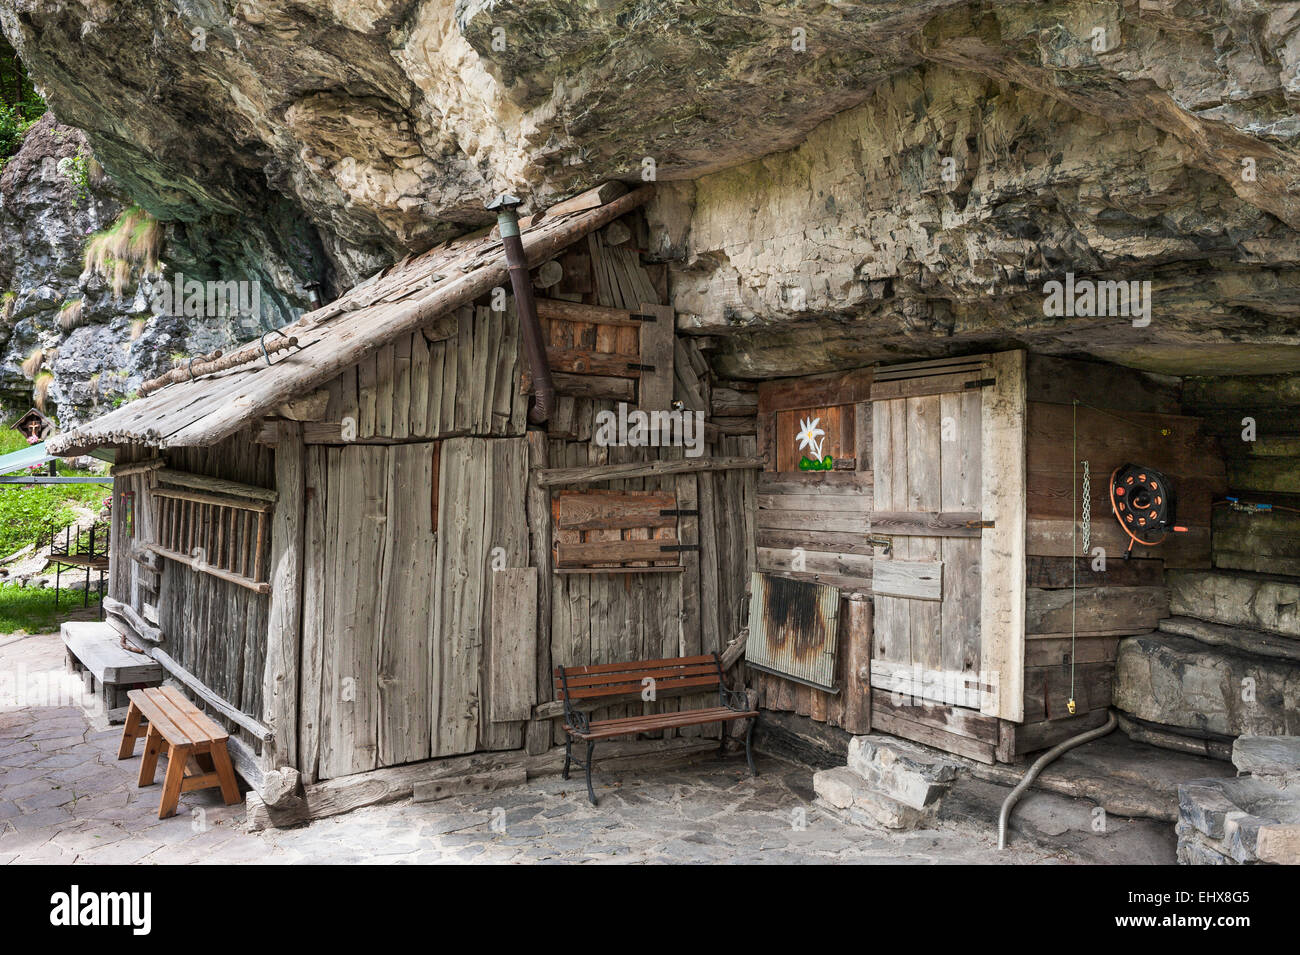 Wooden hut with cliffs, Valle d'Angheraz, Pala Group, Dolomites, Col di Prà, Veneto, Italy - Stock Image